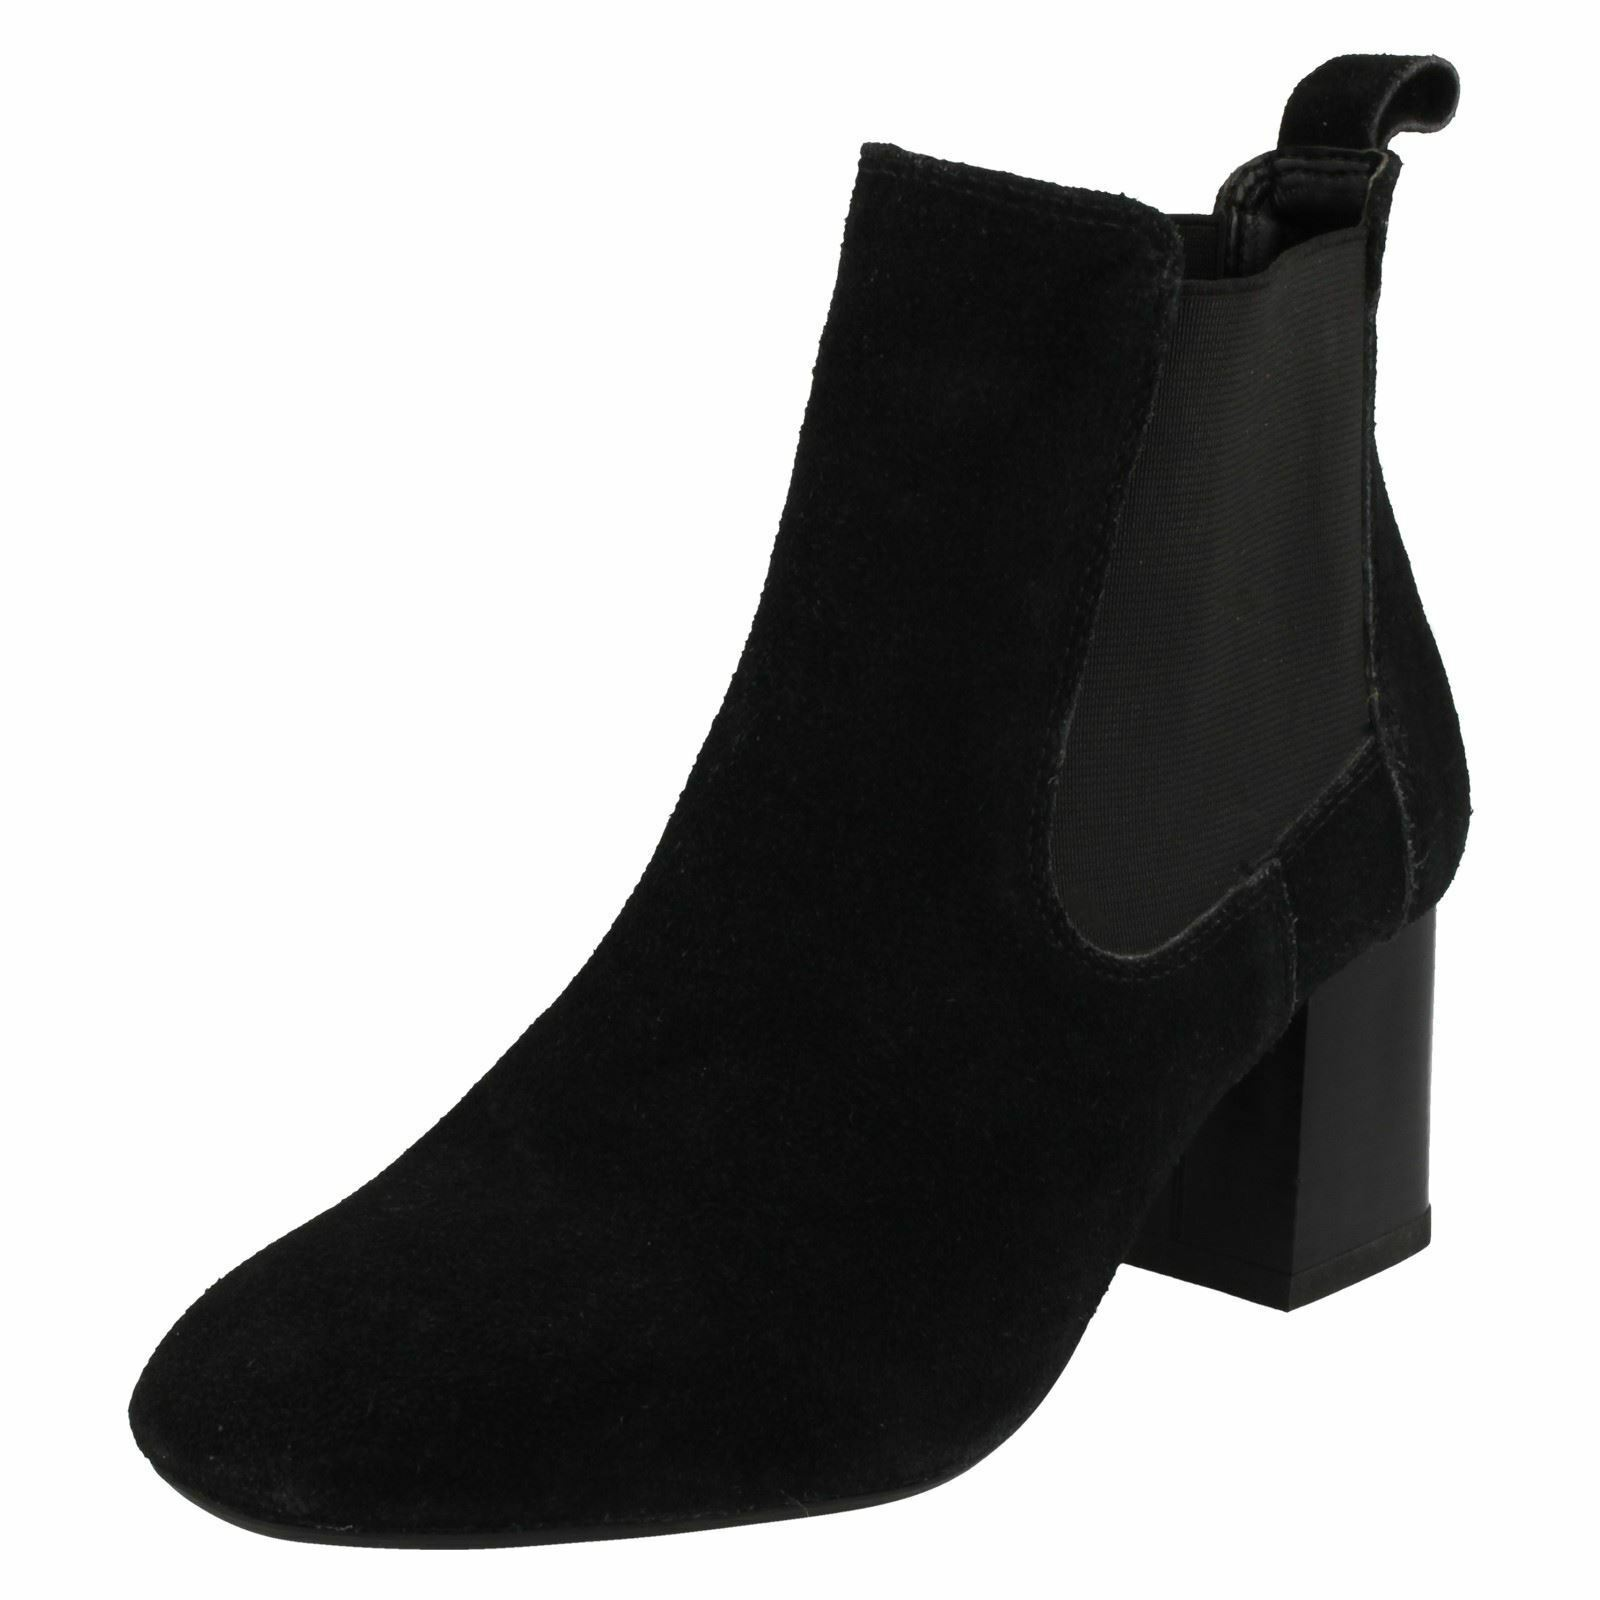 Leather Collection F50657 Ladies Black Suede Leather Pull On Chelsea Boots